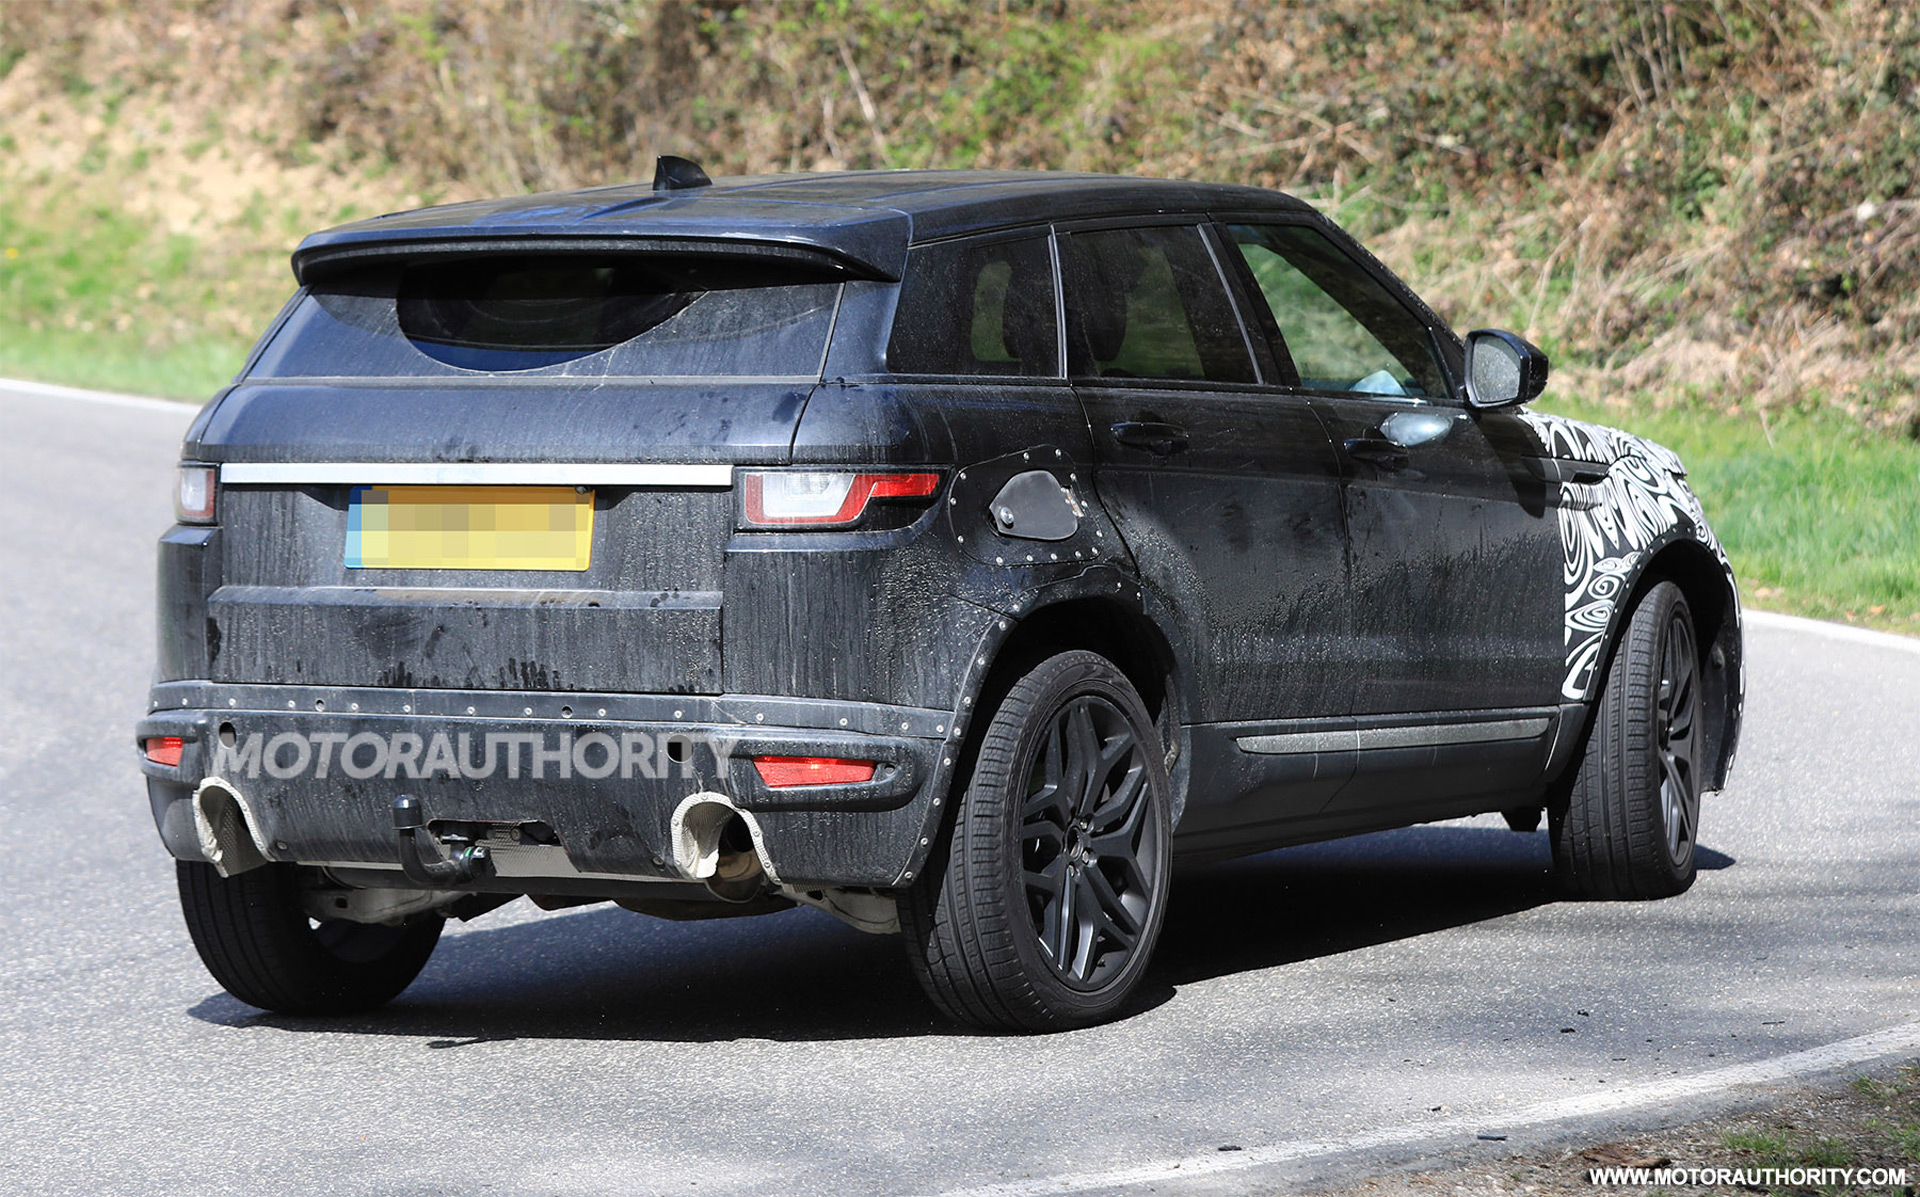 2020 land rover range rover evoque spy shots autozaurus. Black Bedroom Furniture Sets. Home Design Ideas